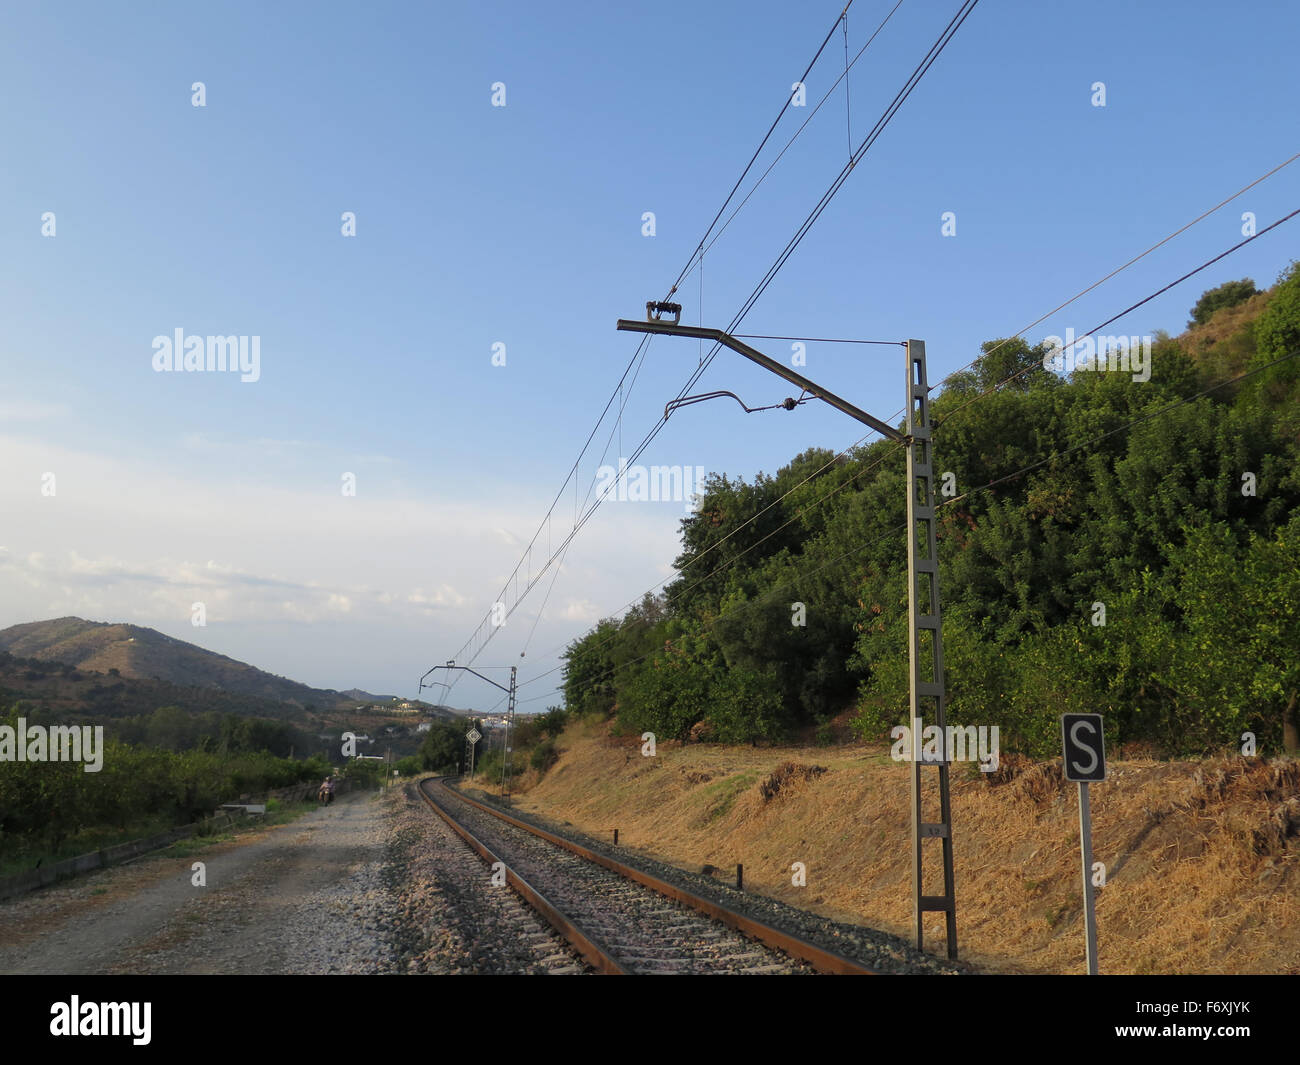 Railway track and country road on sunny day near Alora, Andalusia - Stock Image